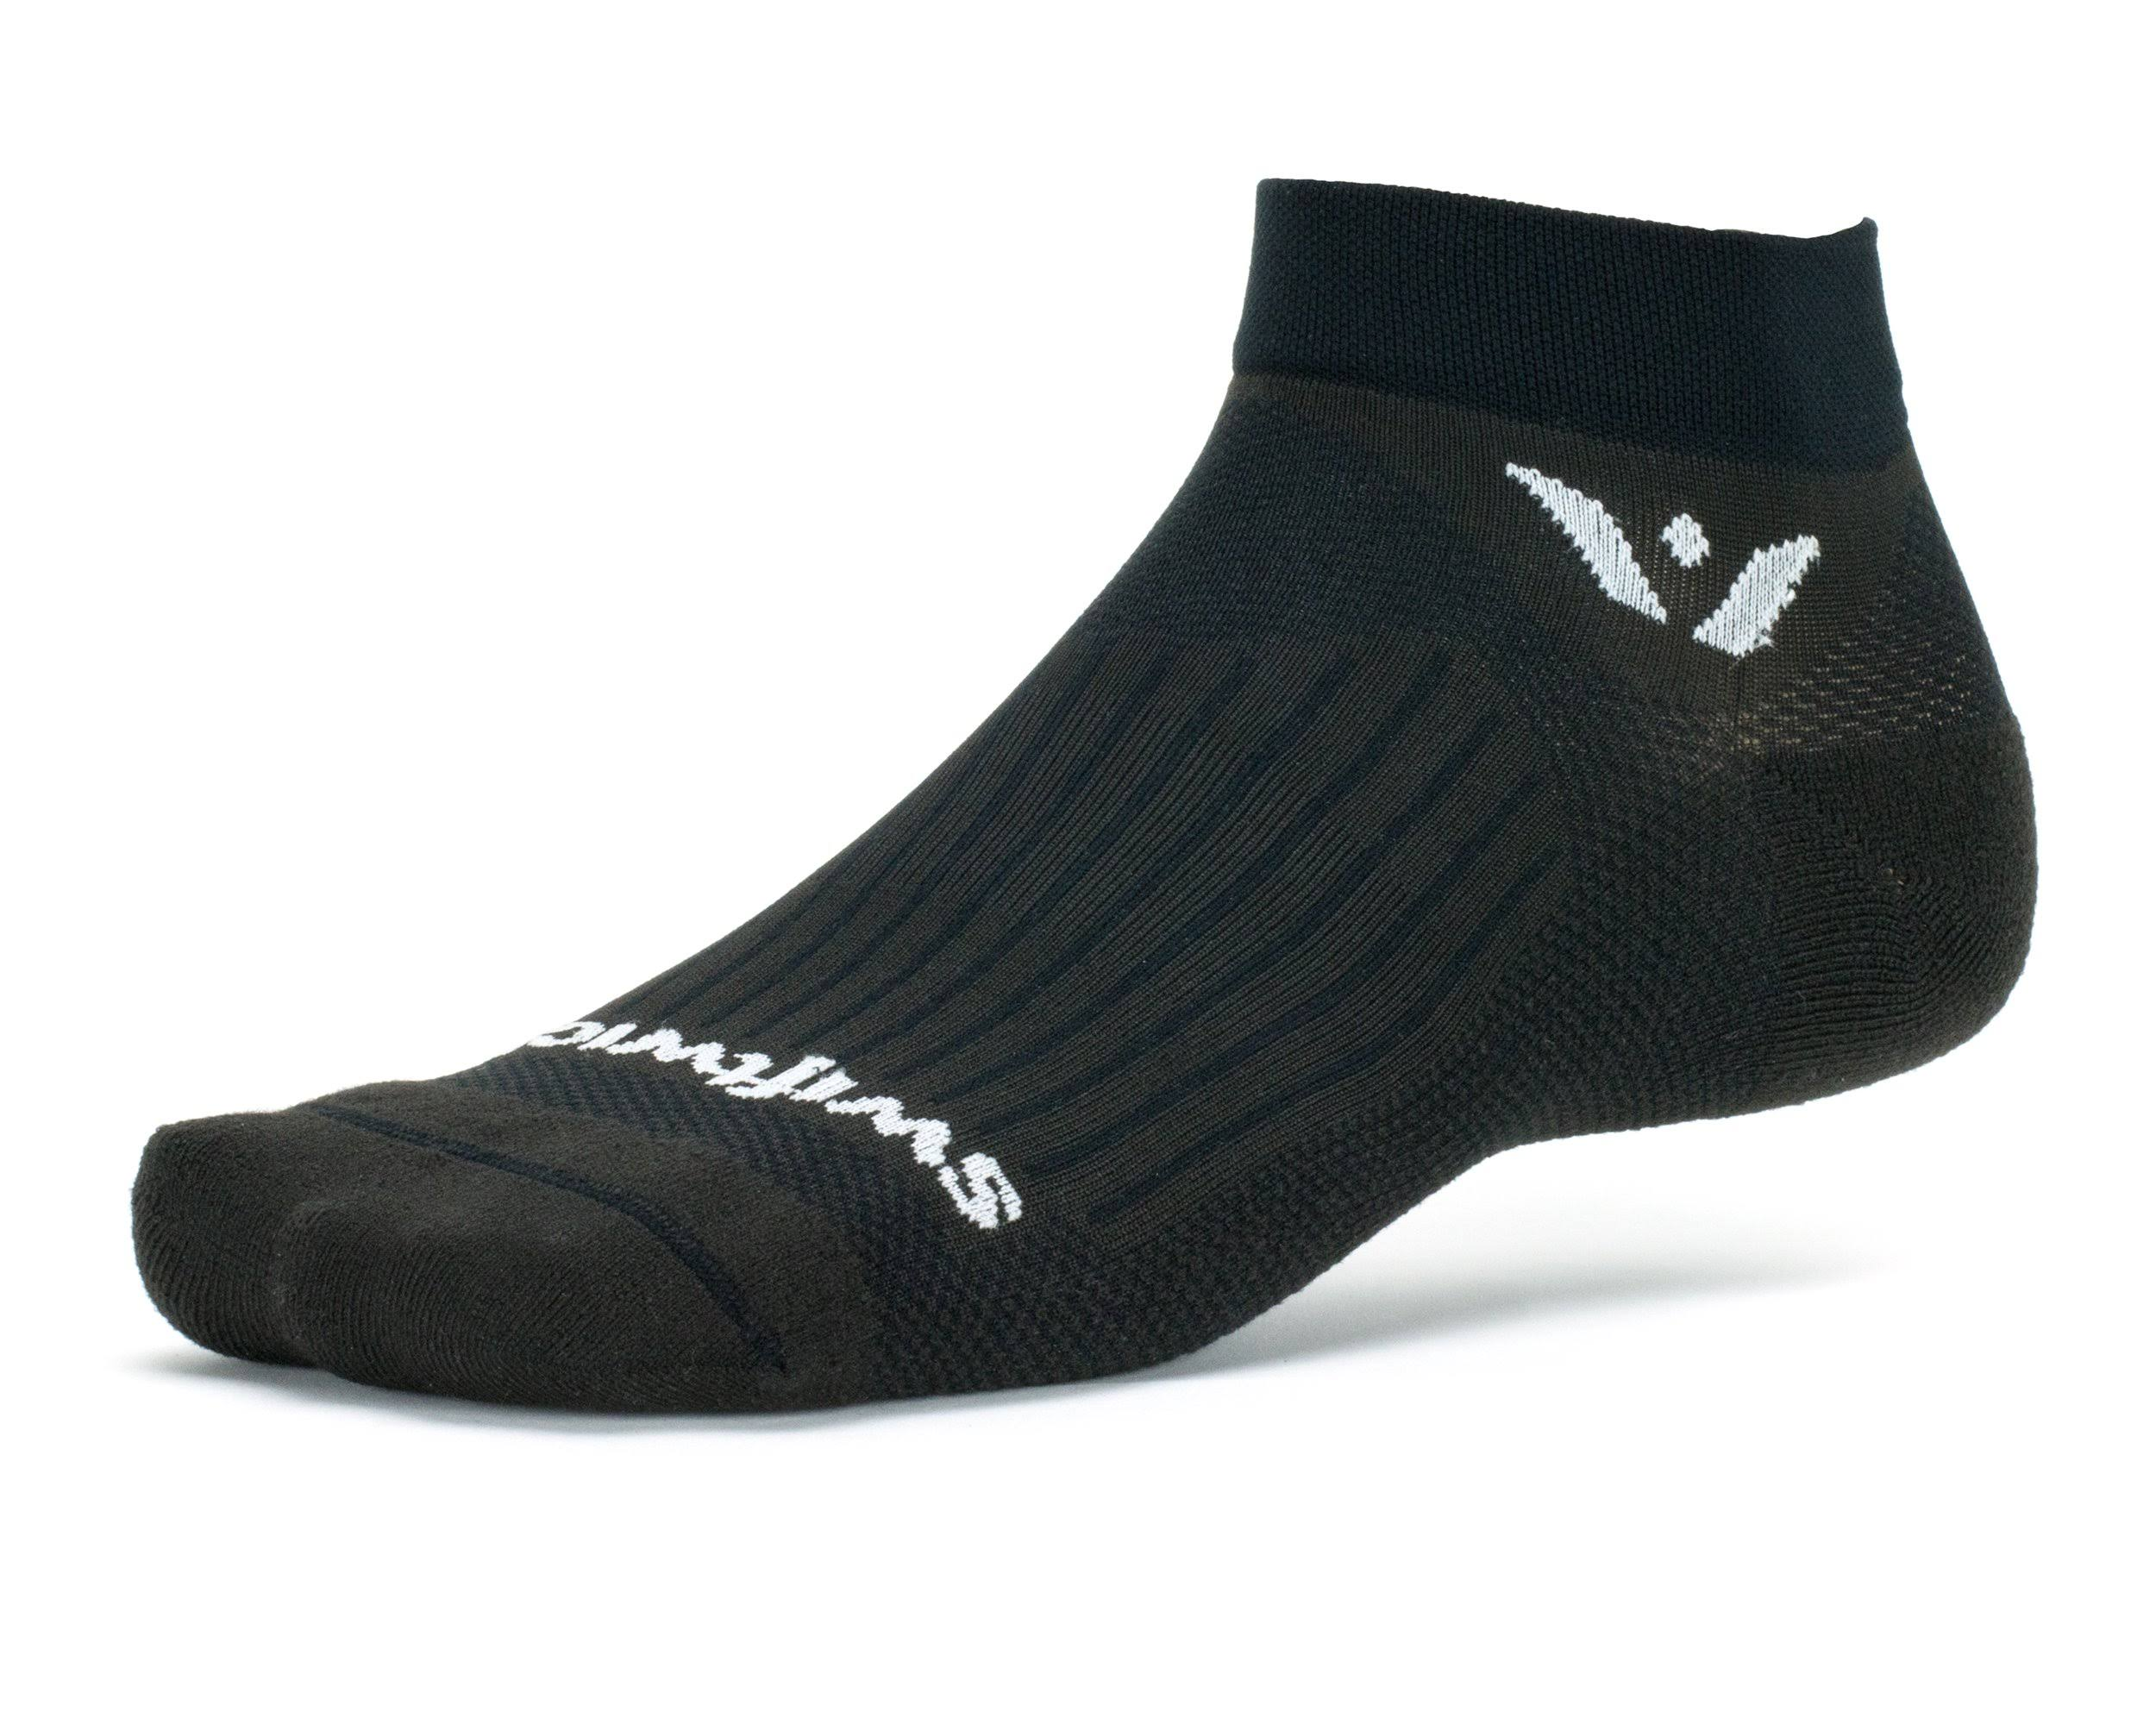 Swiftwick Aspire One Socks - Medium (Pewter)